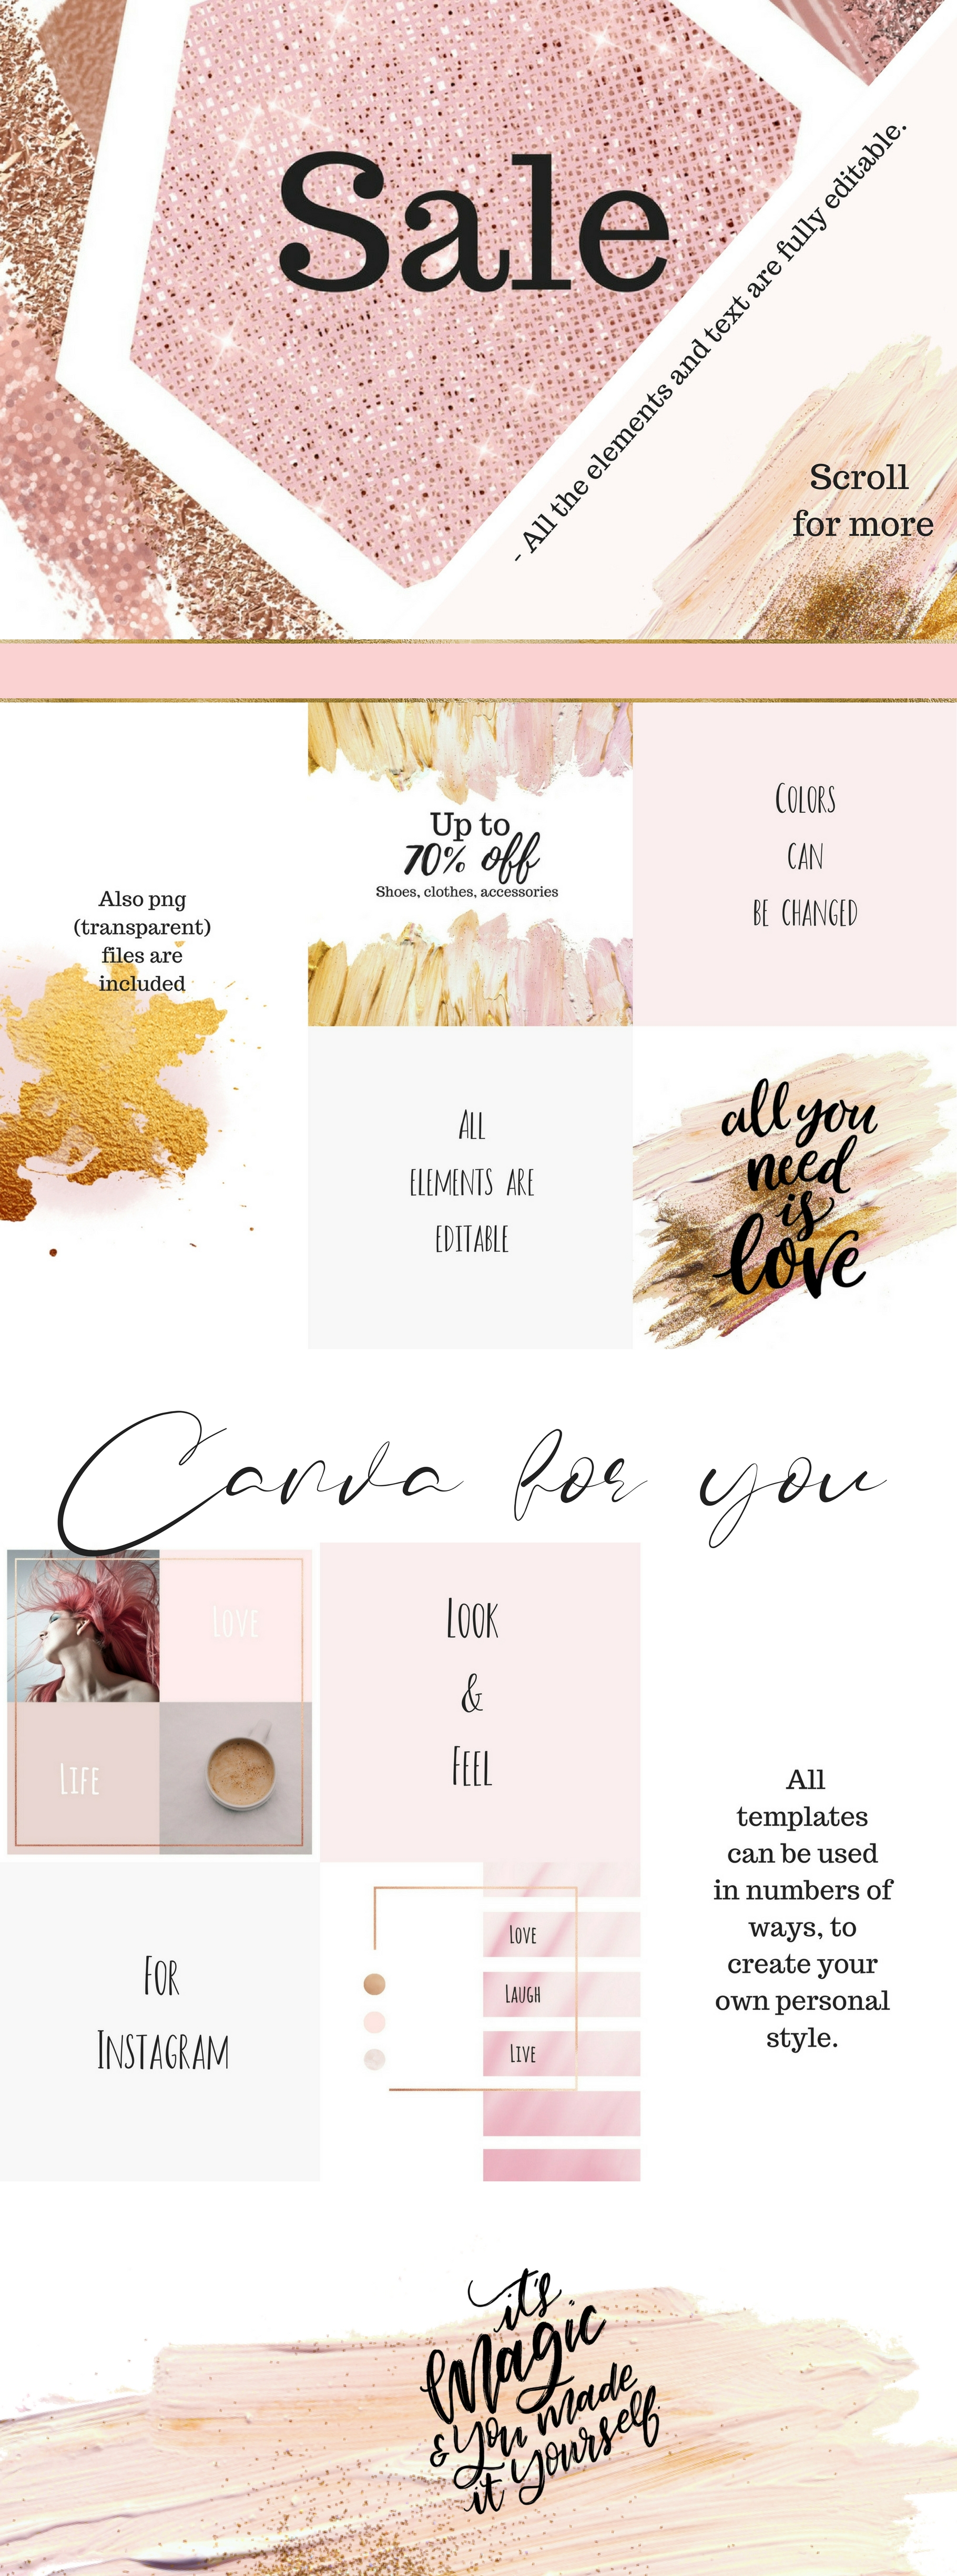 Canva for you - Social media example image 14